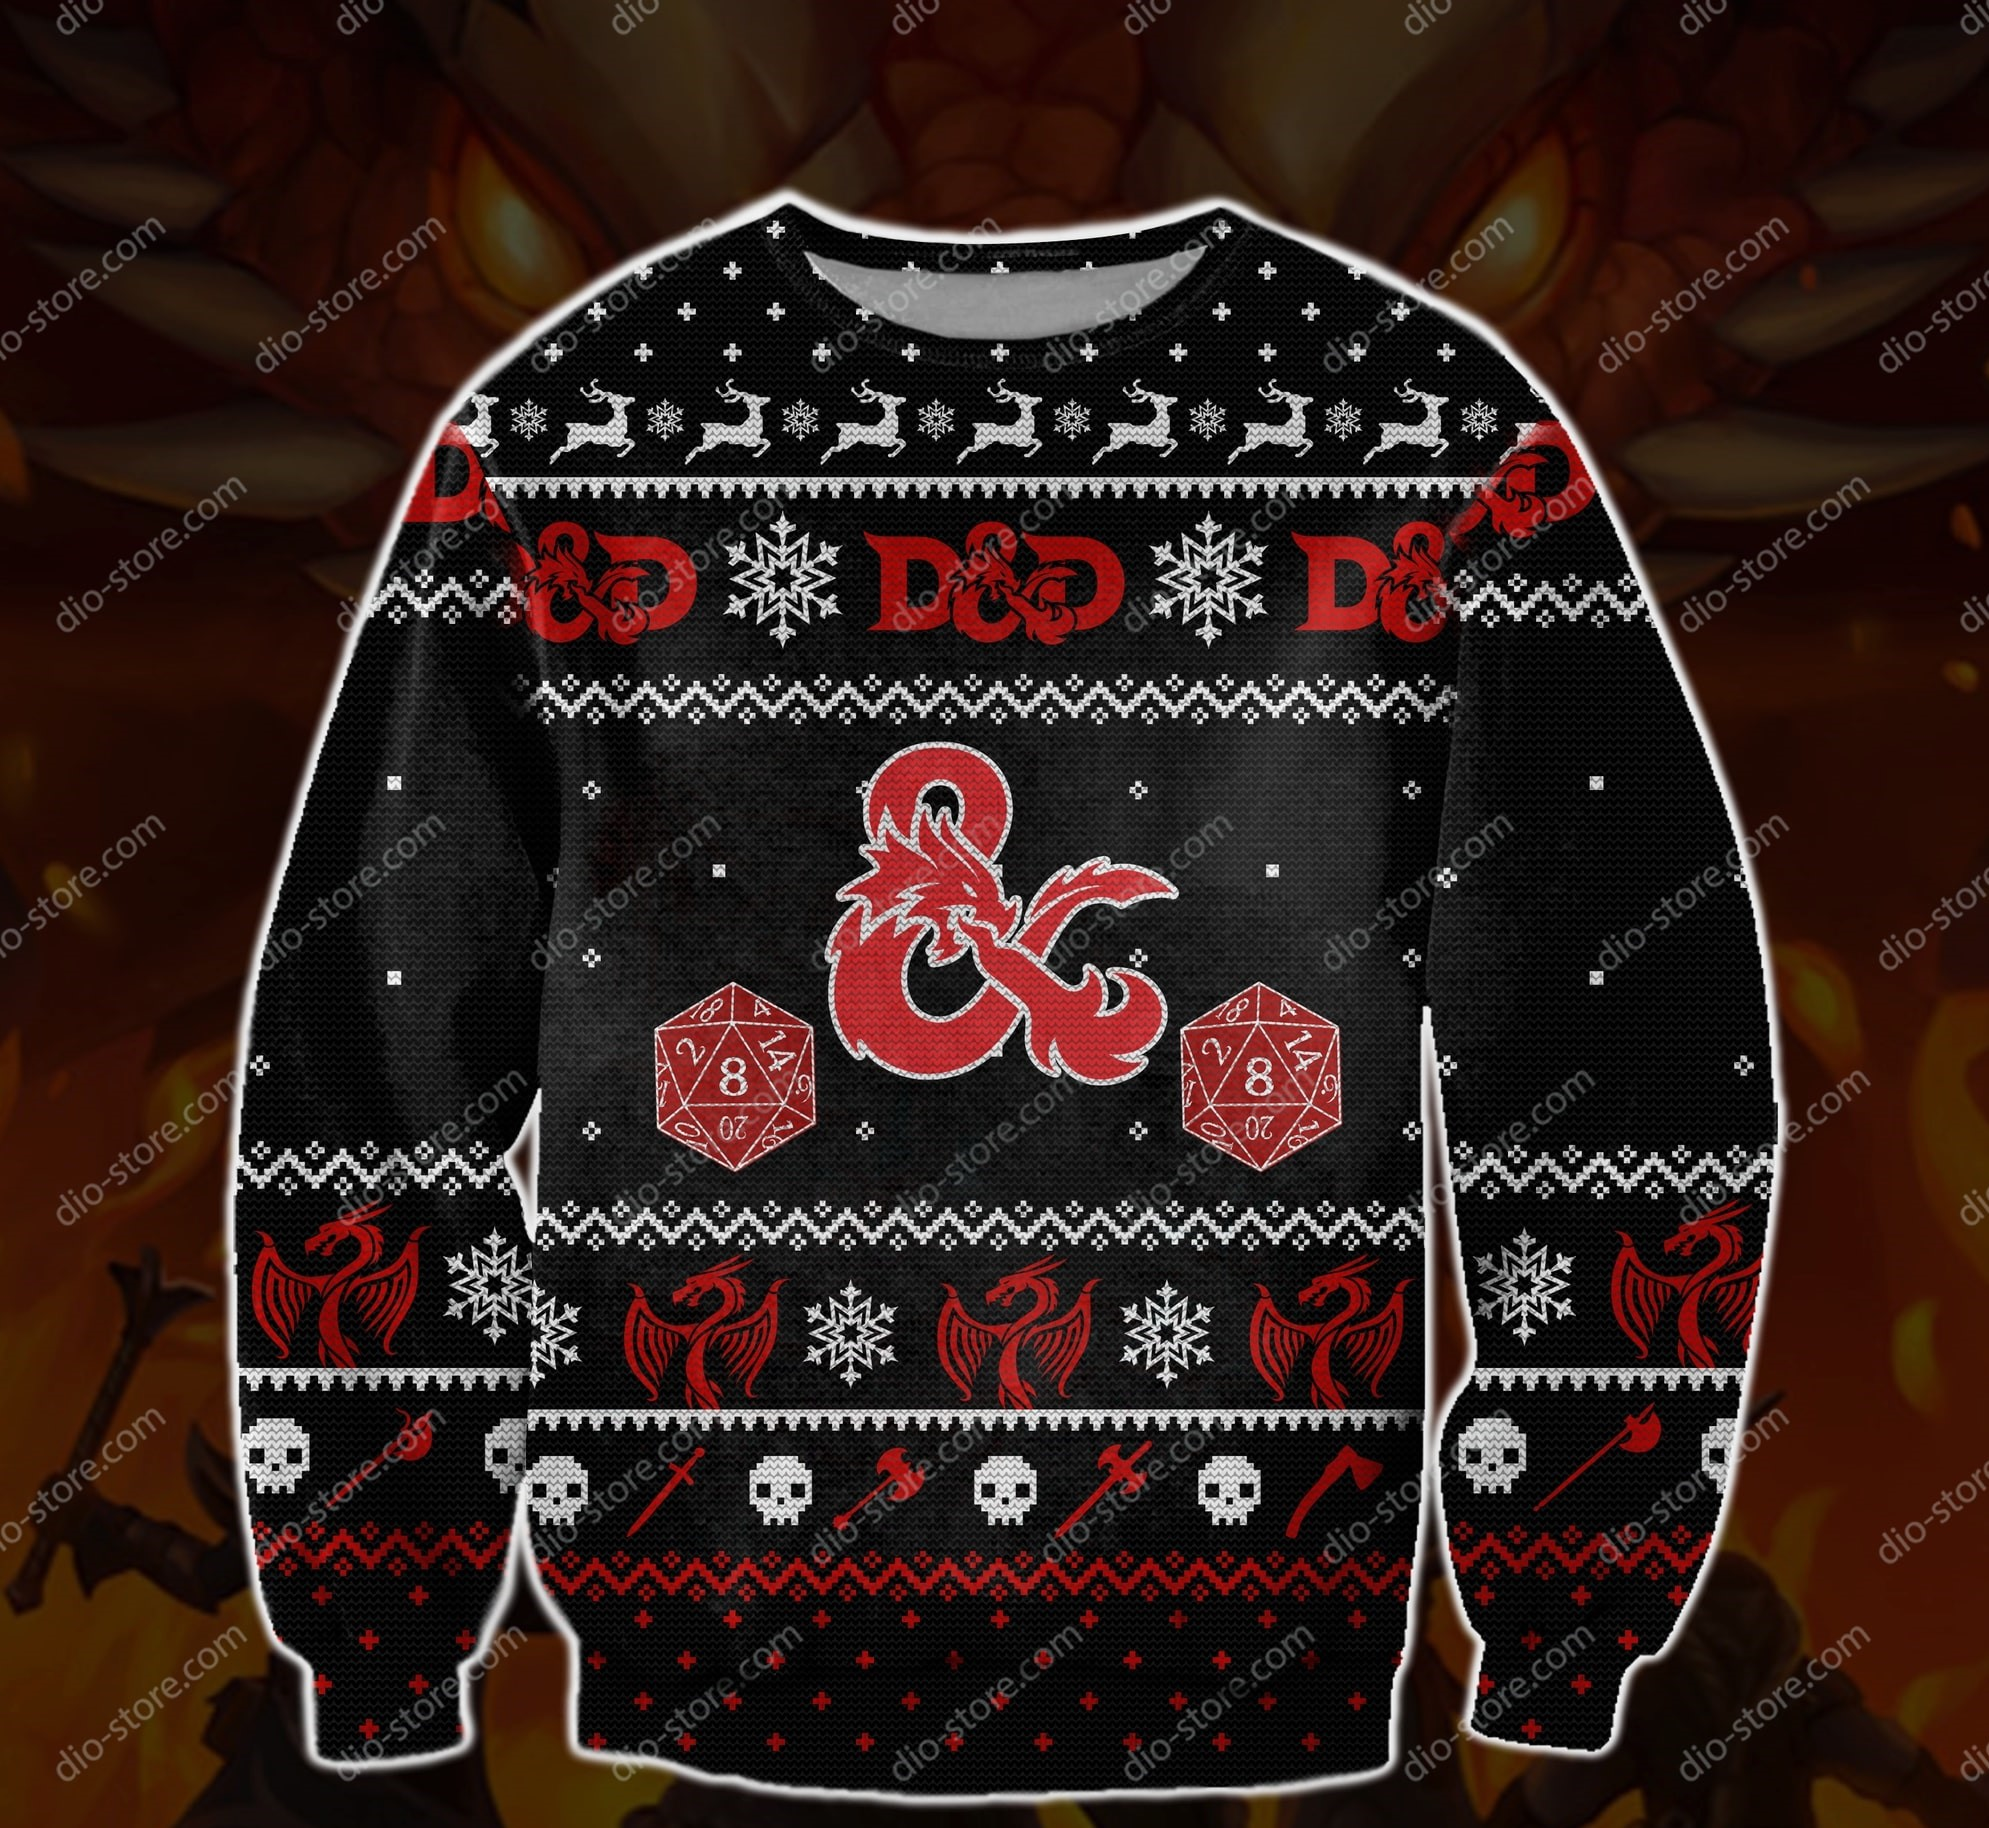 dungeons and dragons all over printed ugly christmas sweater 2 - Copy (2)